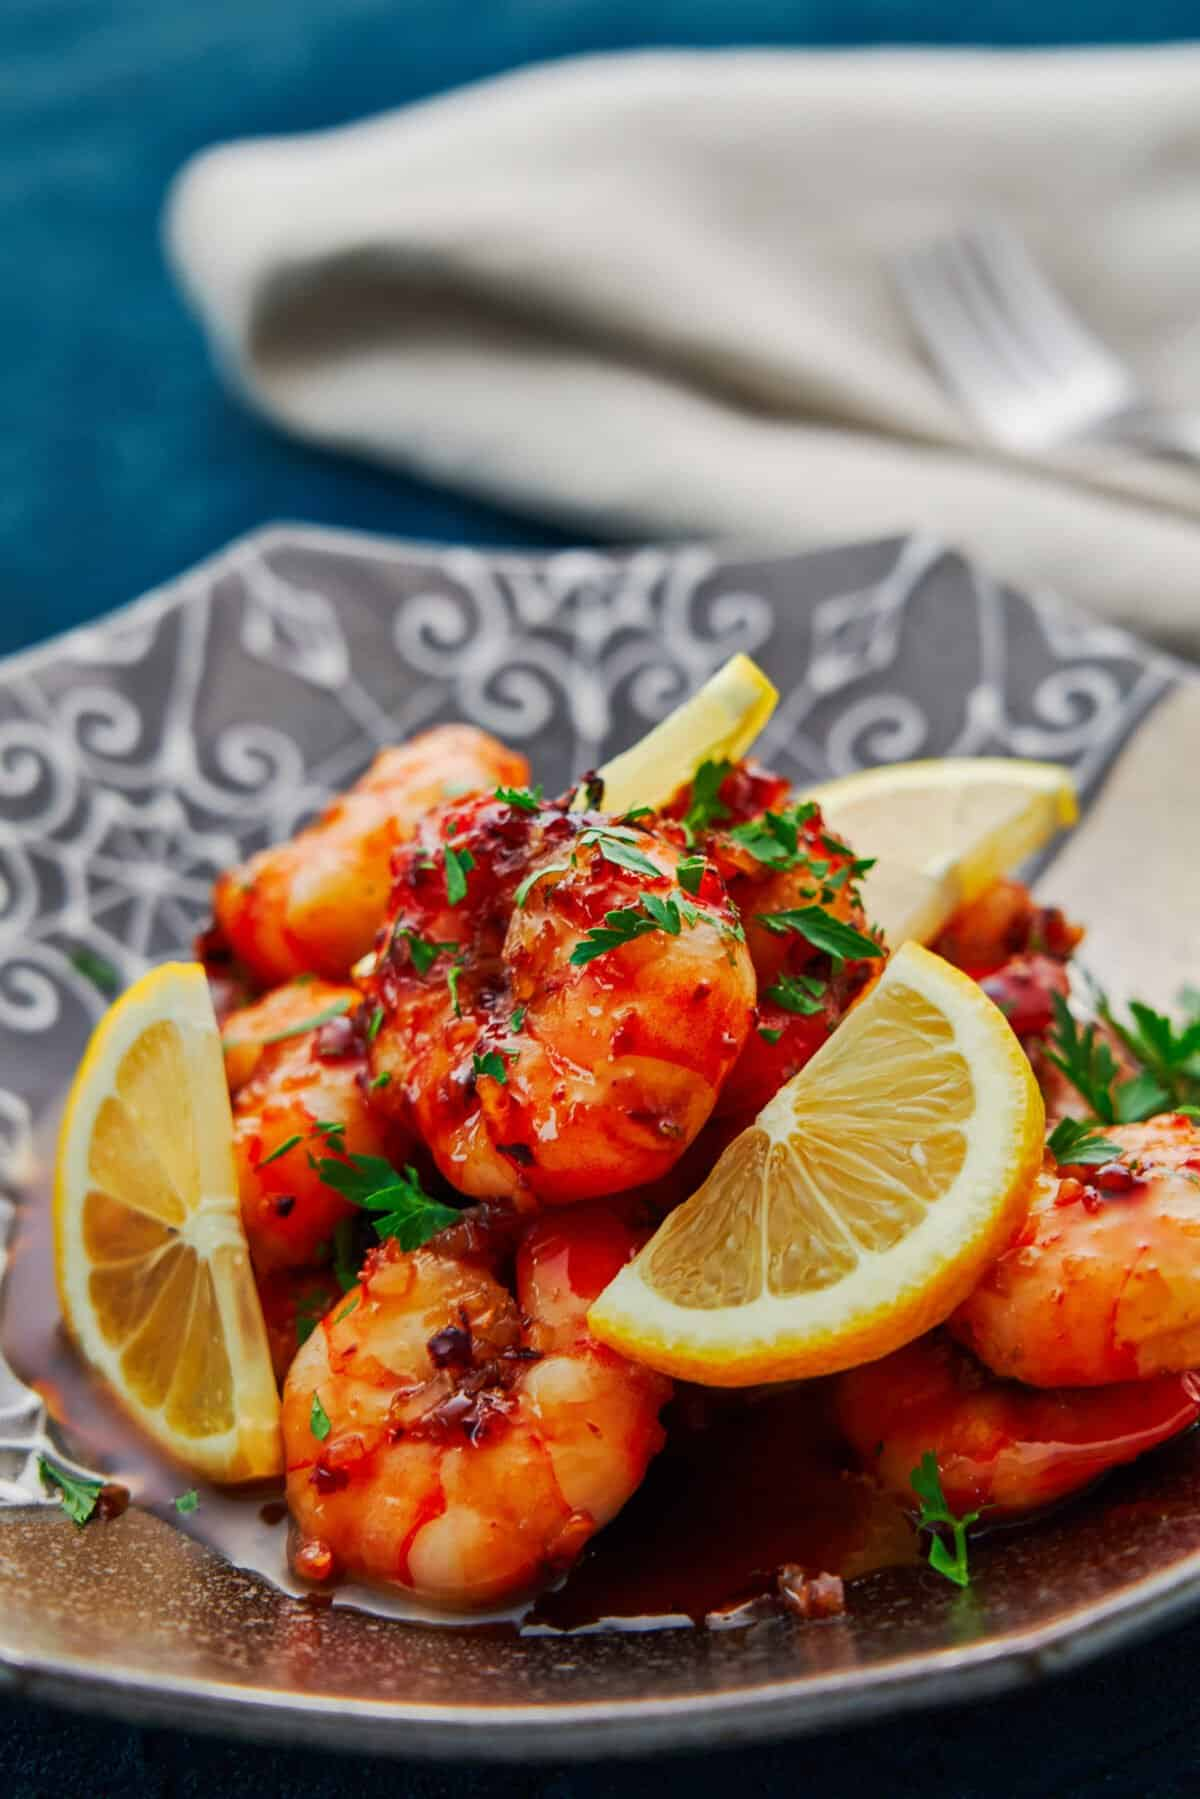 This easy honey garlic shrimp is coated in a mouthwatering sticky garlic glaze, and yet it comes together in minutes from just a handful of pantry staples.